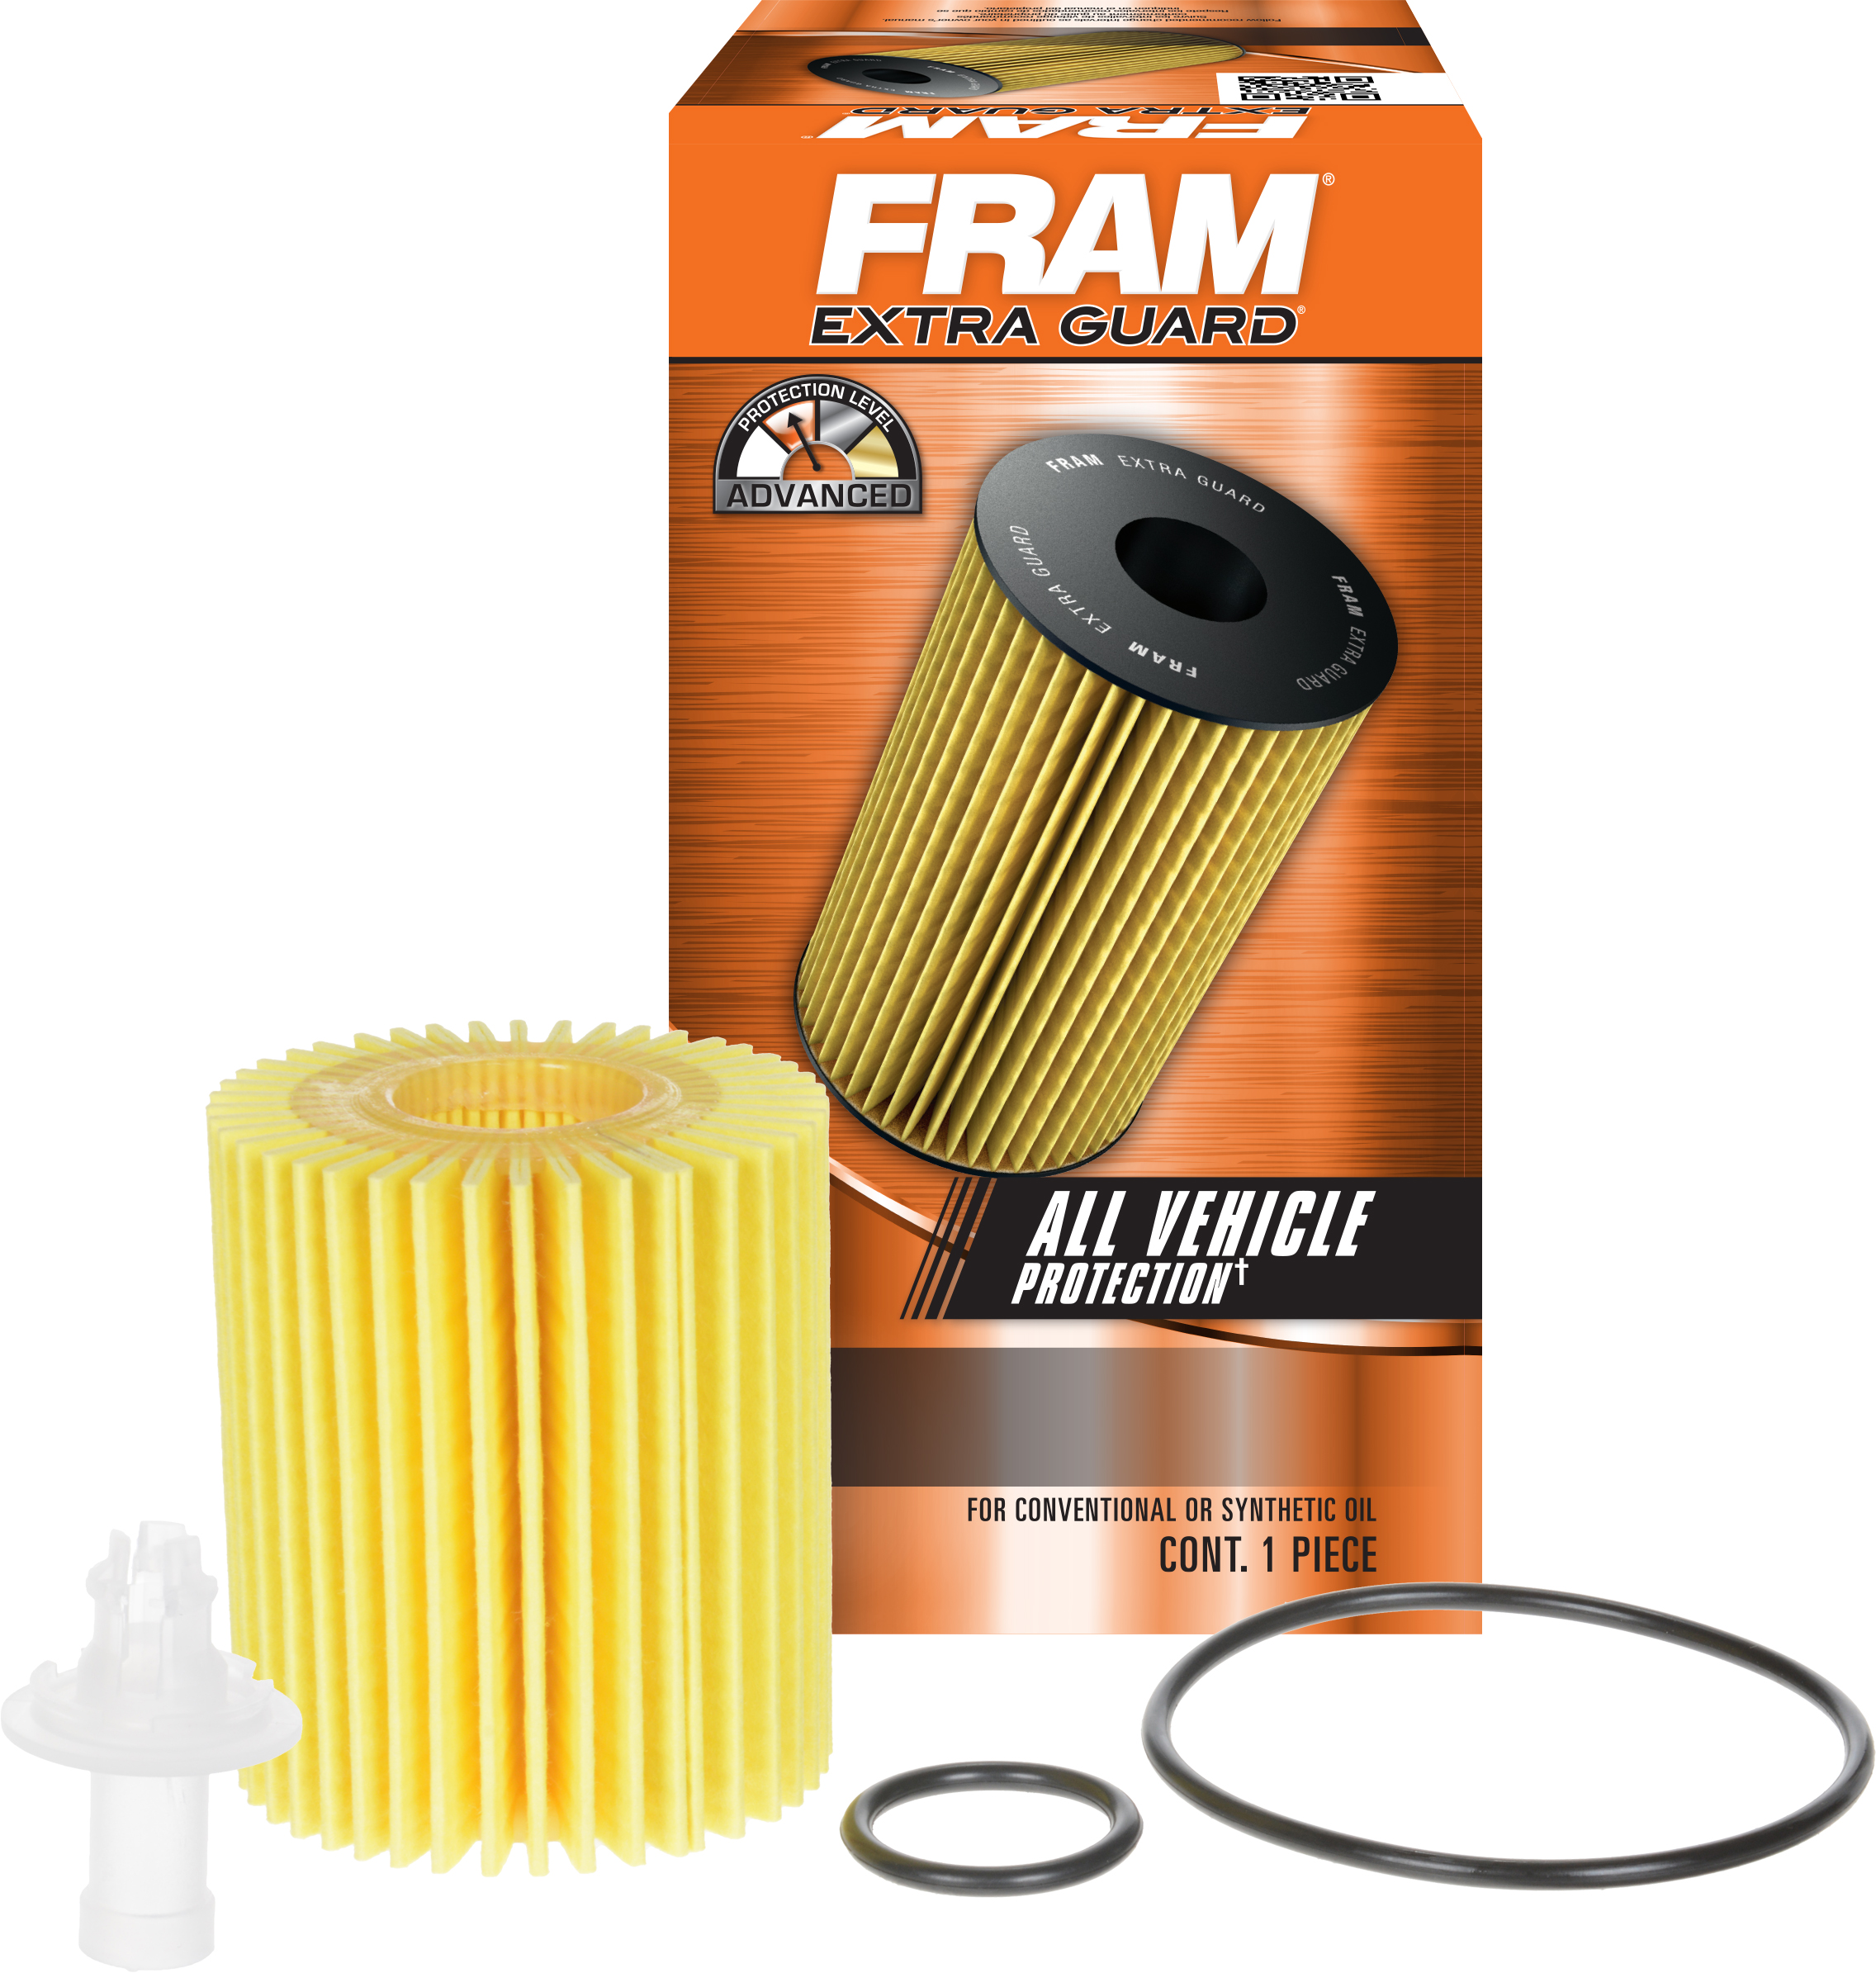 FRAM Extra Guard Oil Filter, CH10158